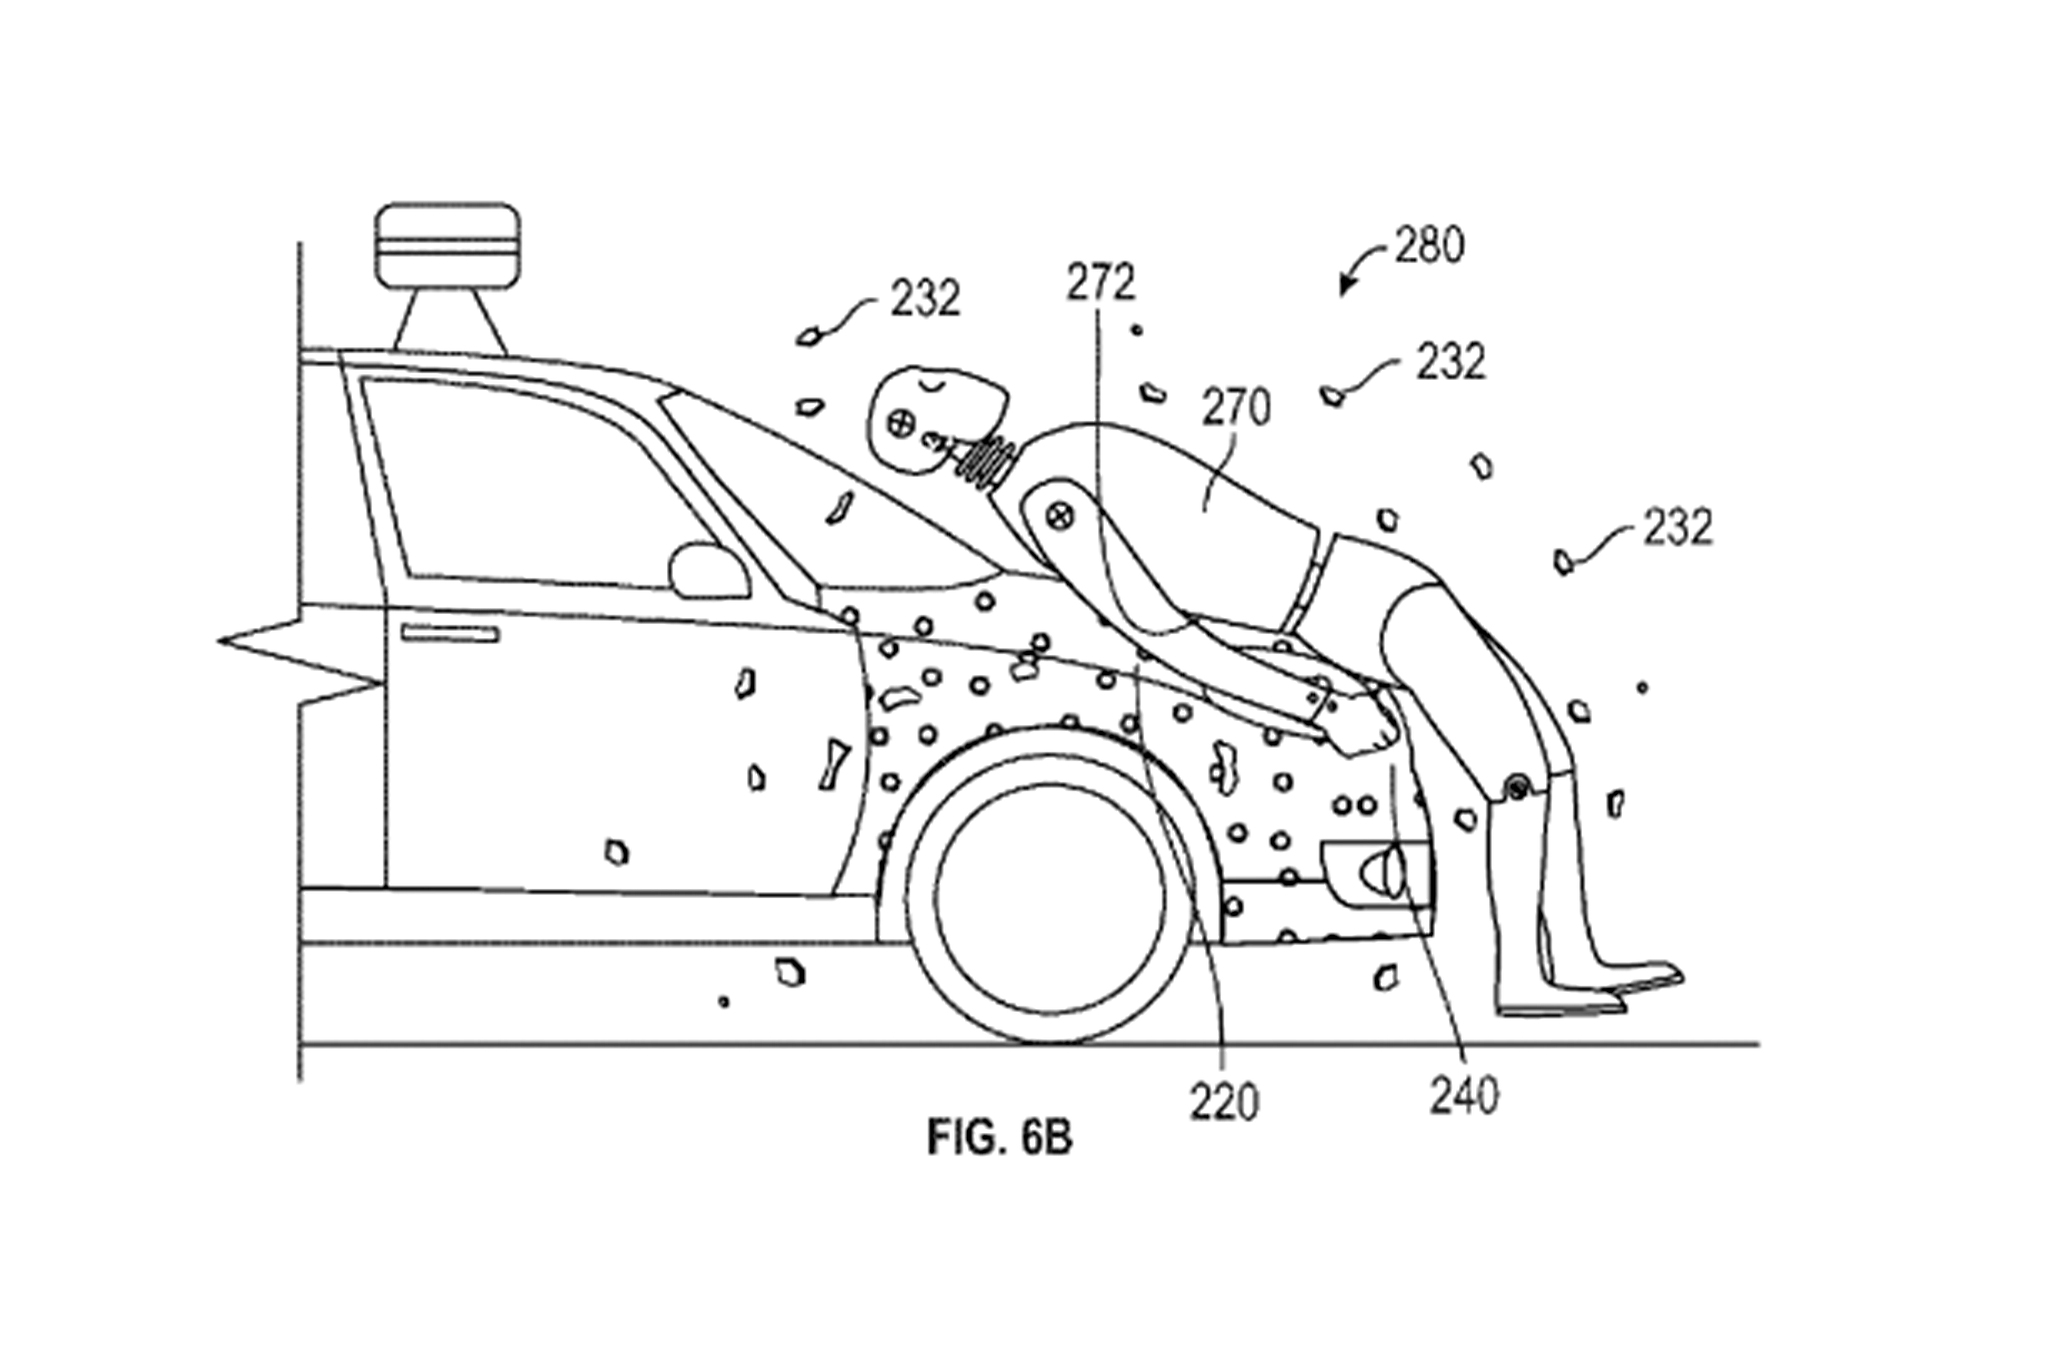 Google-Adhesive-Vehicle-Layer-for-pedestrians-01